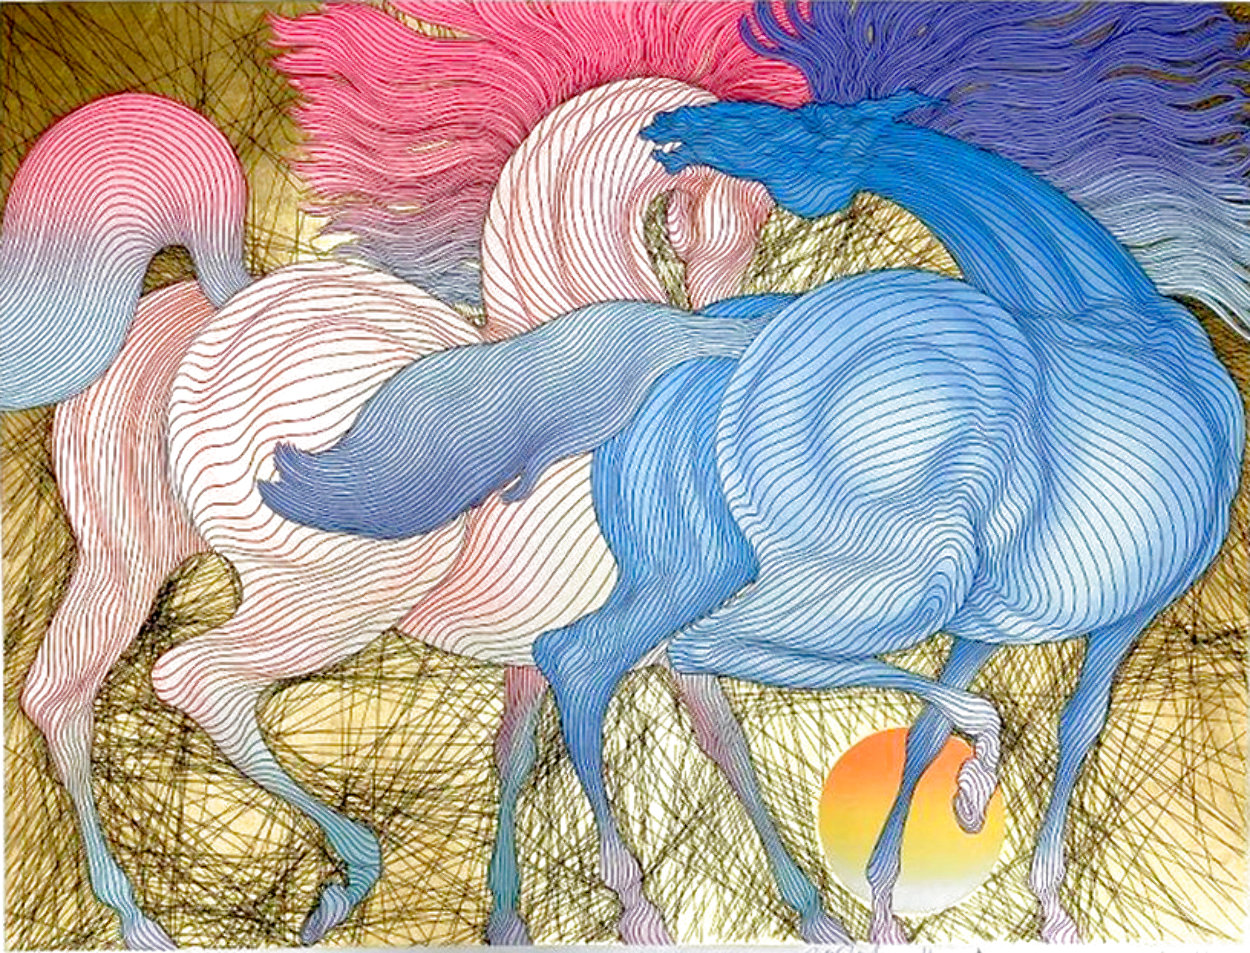 Tryst w/ Remarque 2007 Limited Edition Print by Guillaume Azoulay